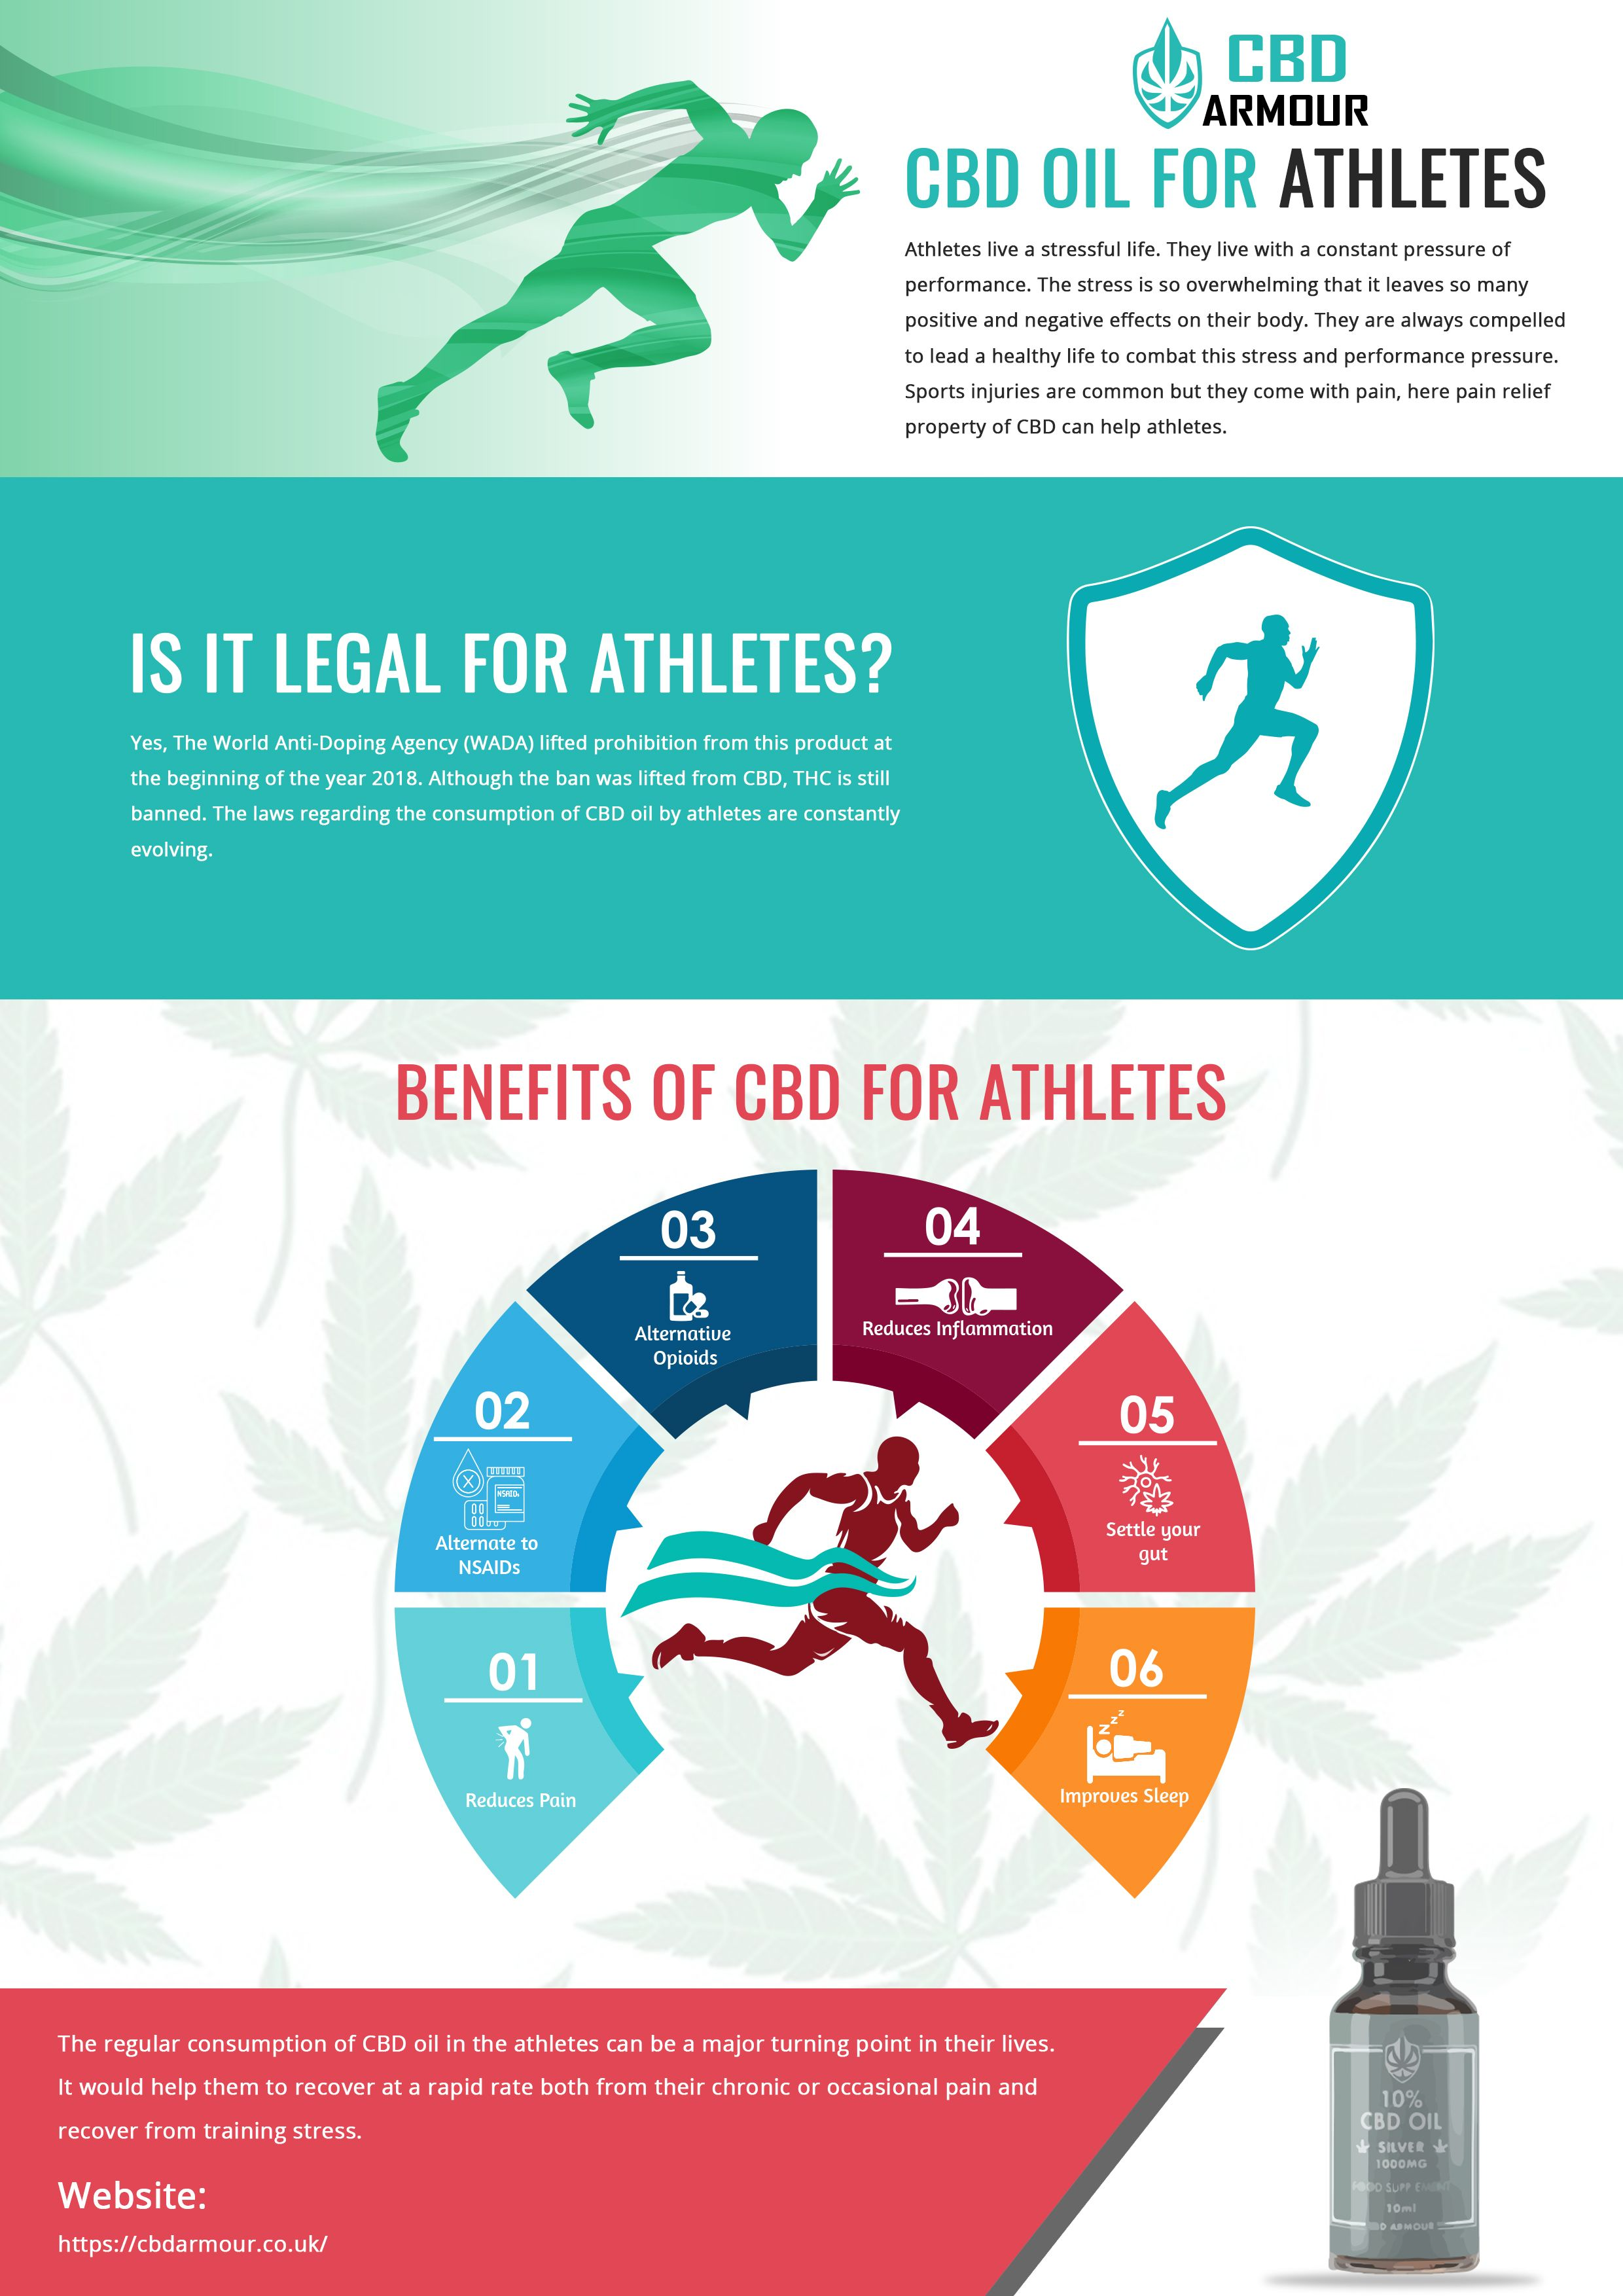 Is CBD Legal for Athletes?